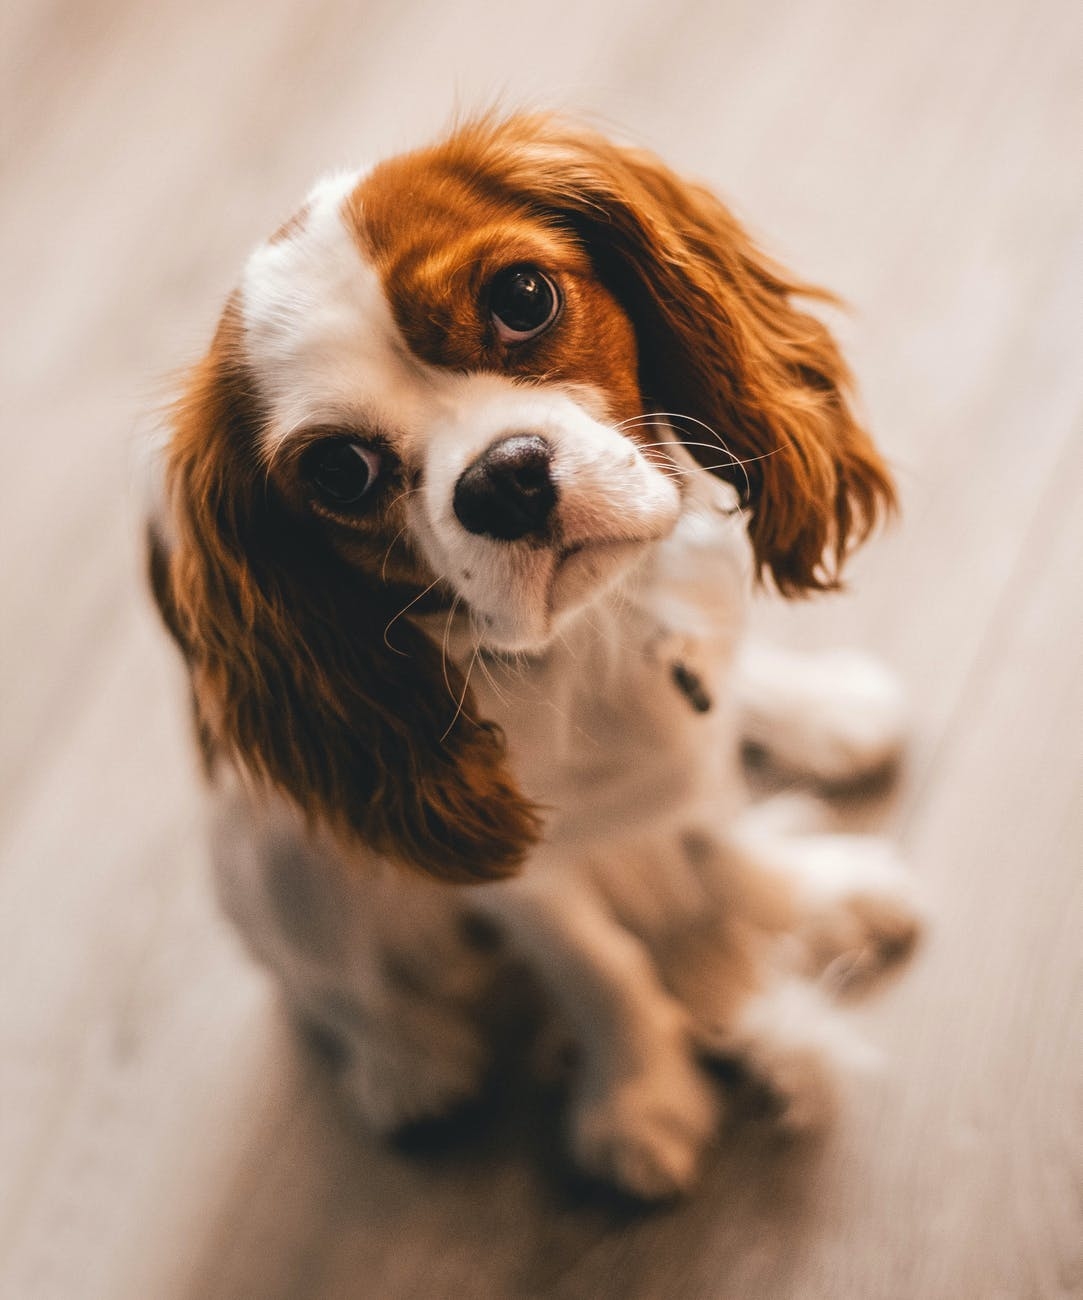 Small Dog Breeds Make Great Companions